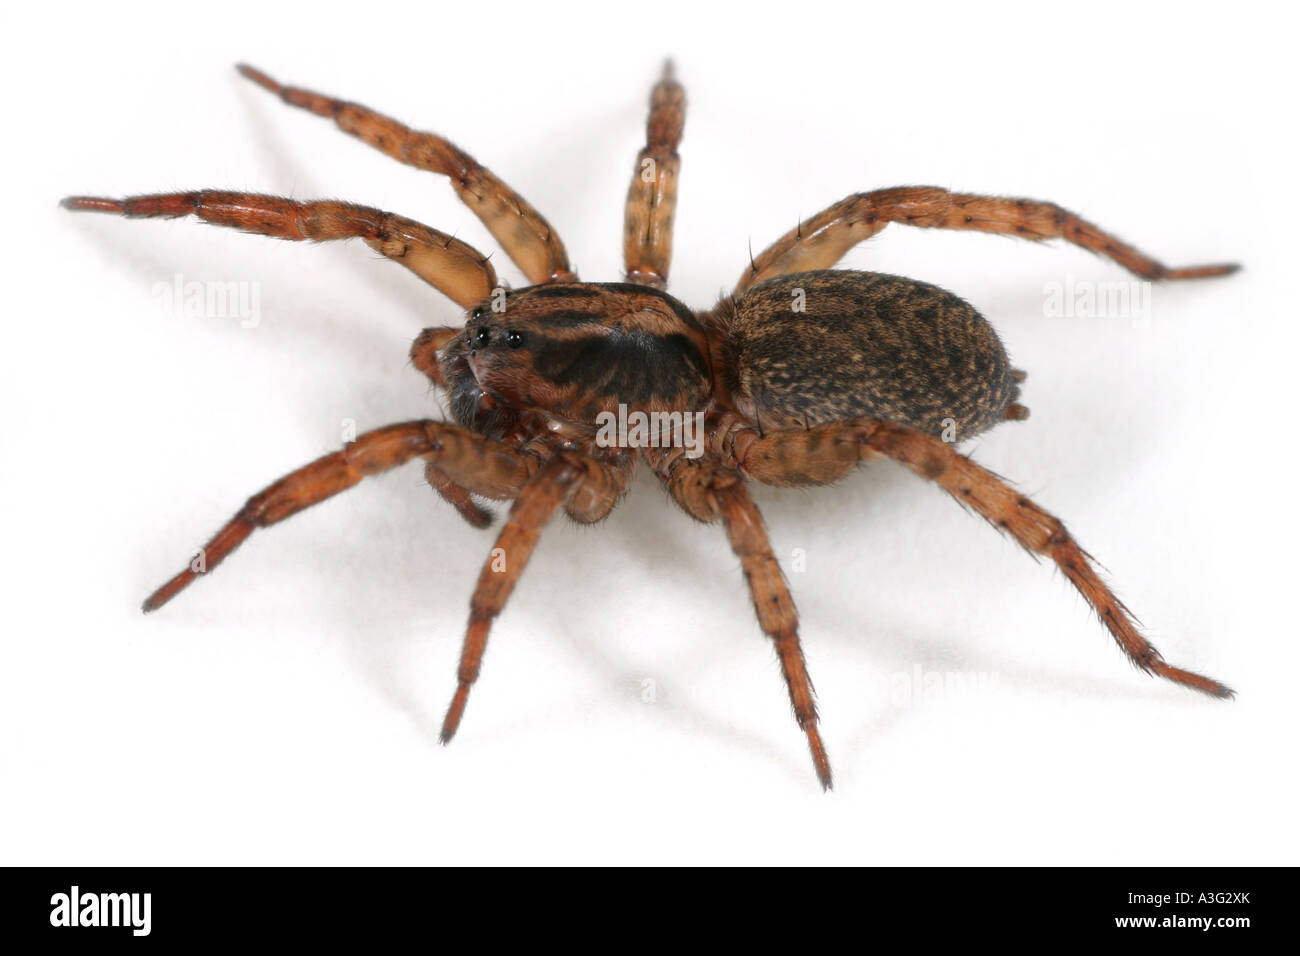 Close up of a Wolf Spider, Trochosa terricola, on white background - Stock Image